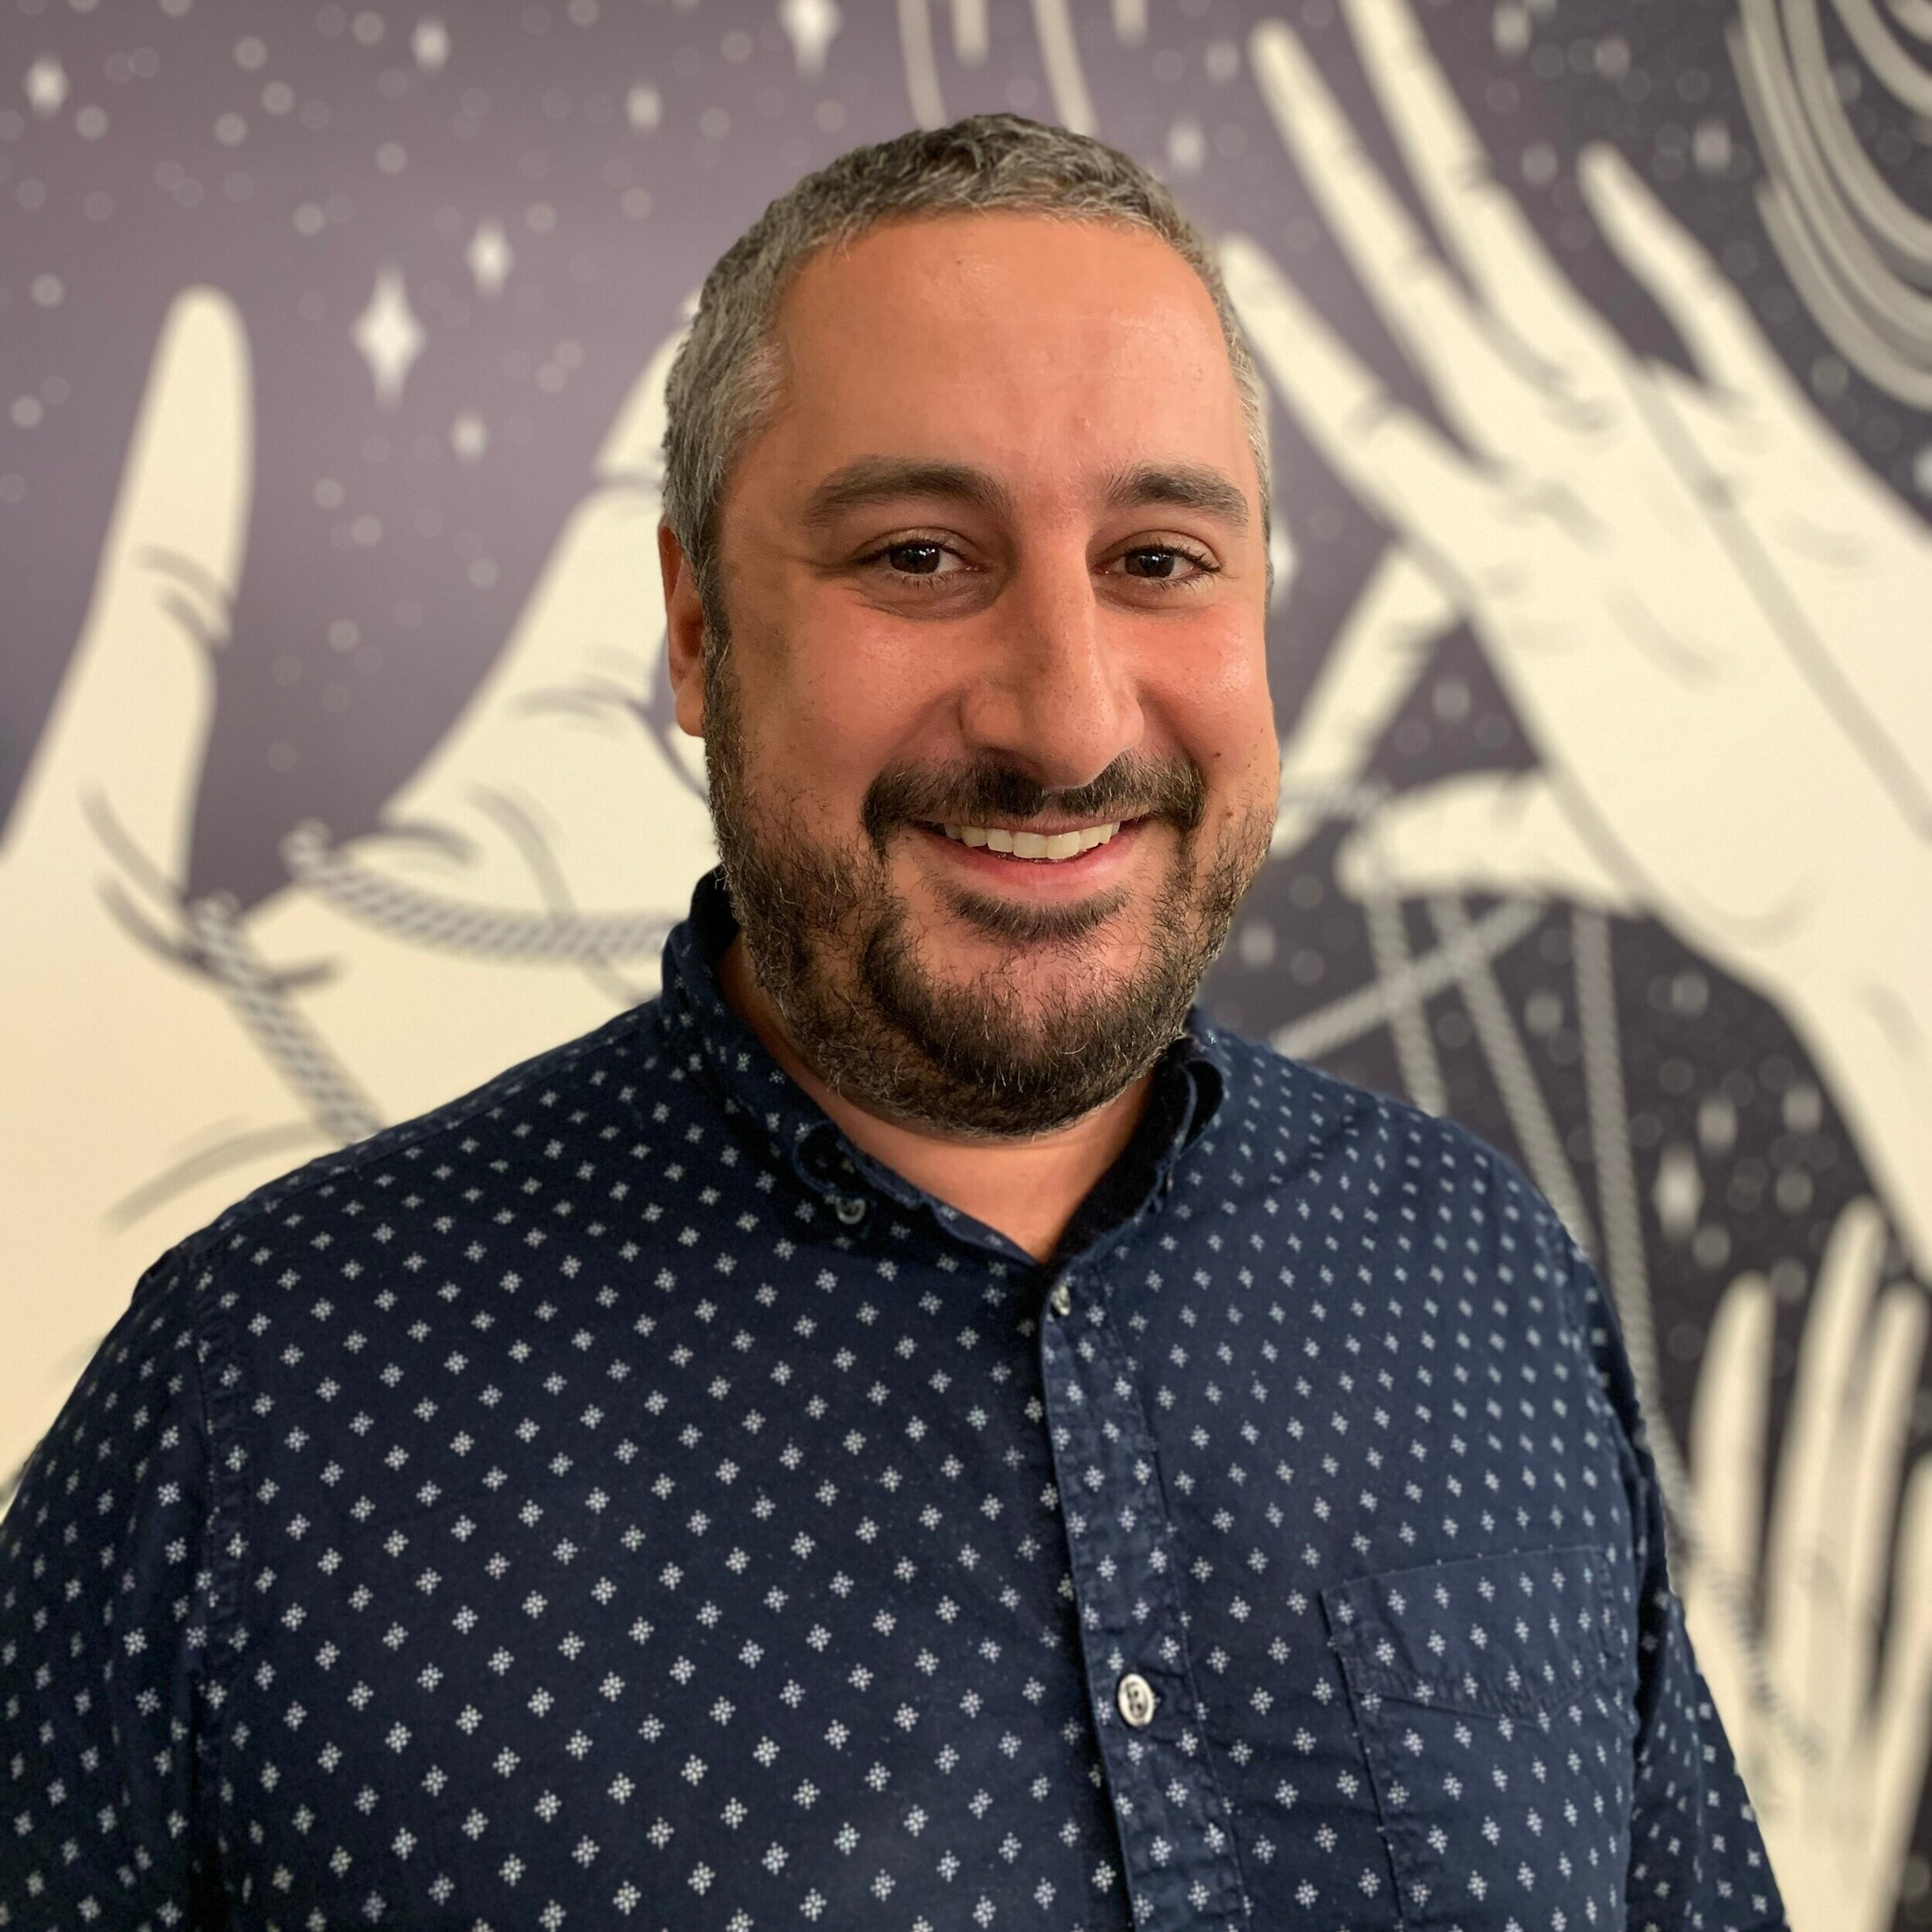 Before joining Symphonic Distribution in 2018, Jon Mizrachi served as Creative Director for Carlin America overseeing the creative licensing of a sizable classic catalog of hit songs. In his 12 years with the company, he secured hundreds of television, film, and ad placements for iconic artists such as James Brown, AC/DC, Bobby Darin, The Turtles, Billie Holiday and The Lovin' Spoonful. Bringing his extensive sync experience to Symphonic Distribution, Jon currently serves as Sr. Director overseeing all client signings, pitching, licensing, marketing and business development for their newly branded in-house sync division Bodega Sync. With a rapidly-growing and highly curated roster of independent artists selected specifically for sync, Bodega is quickly becoming a go-to resource for music supervisors and advertising agencies.